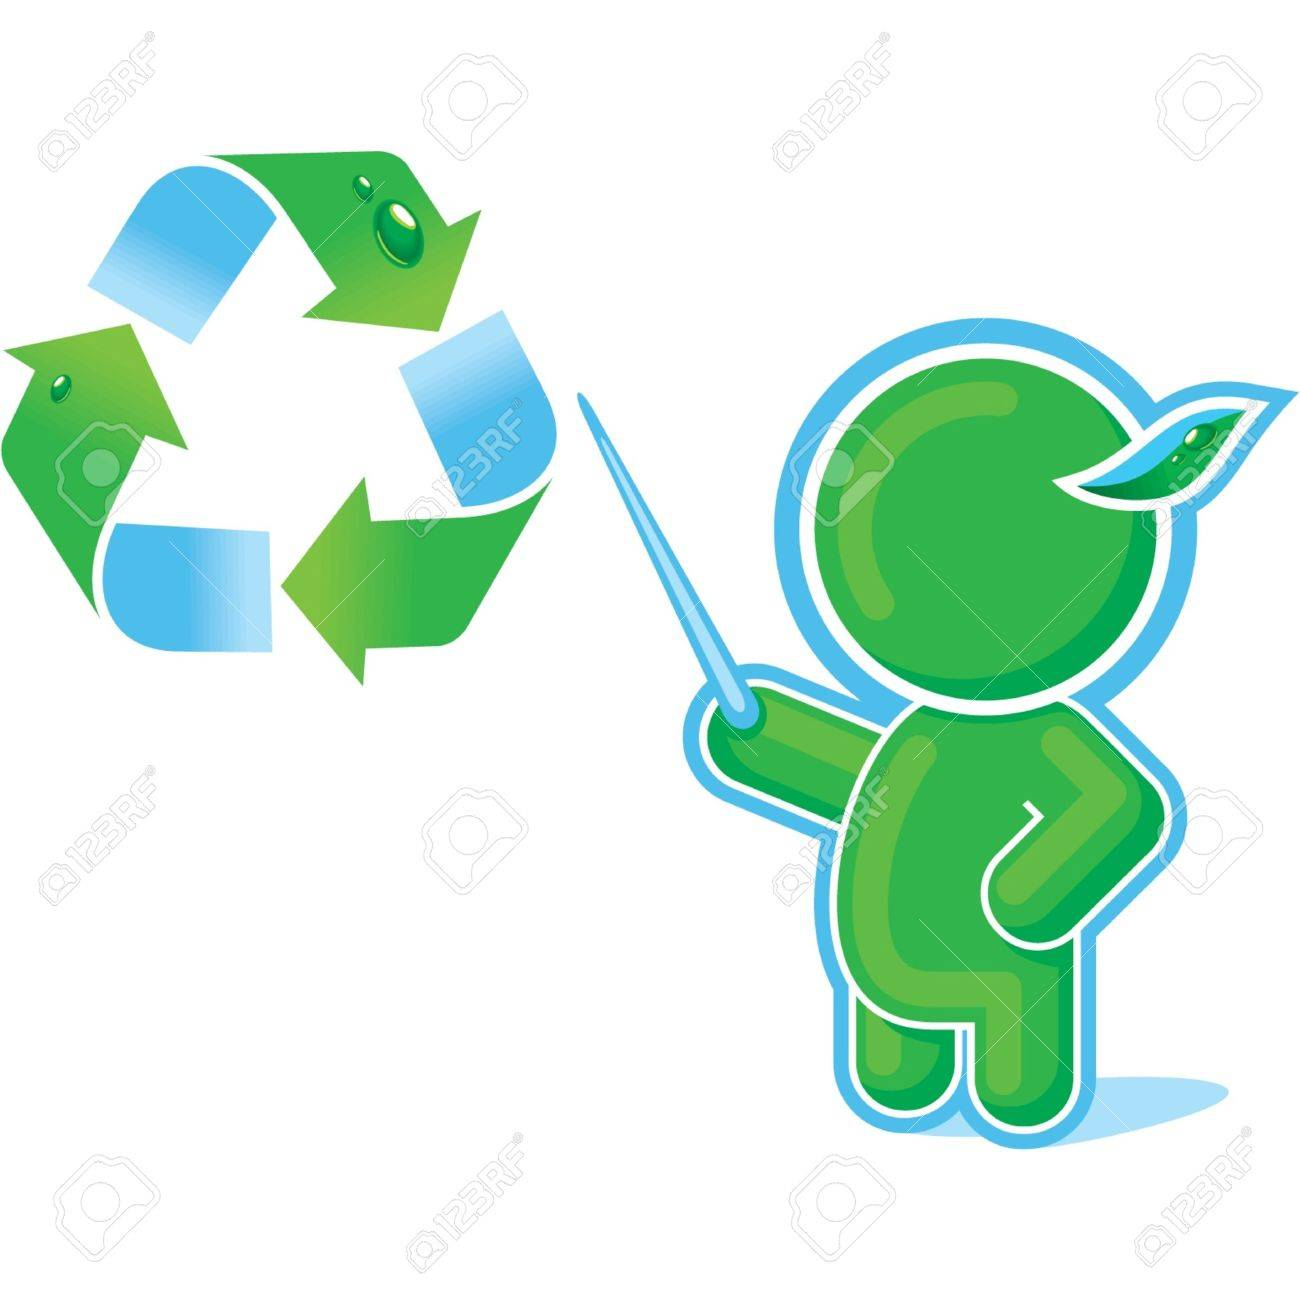 Green Hero with Recycle Symbol Stock Vector - 11113901